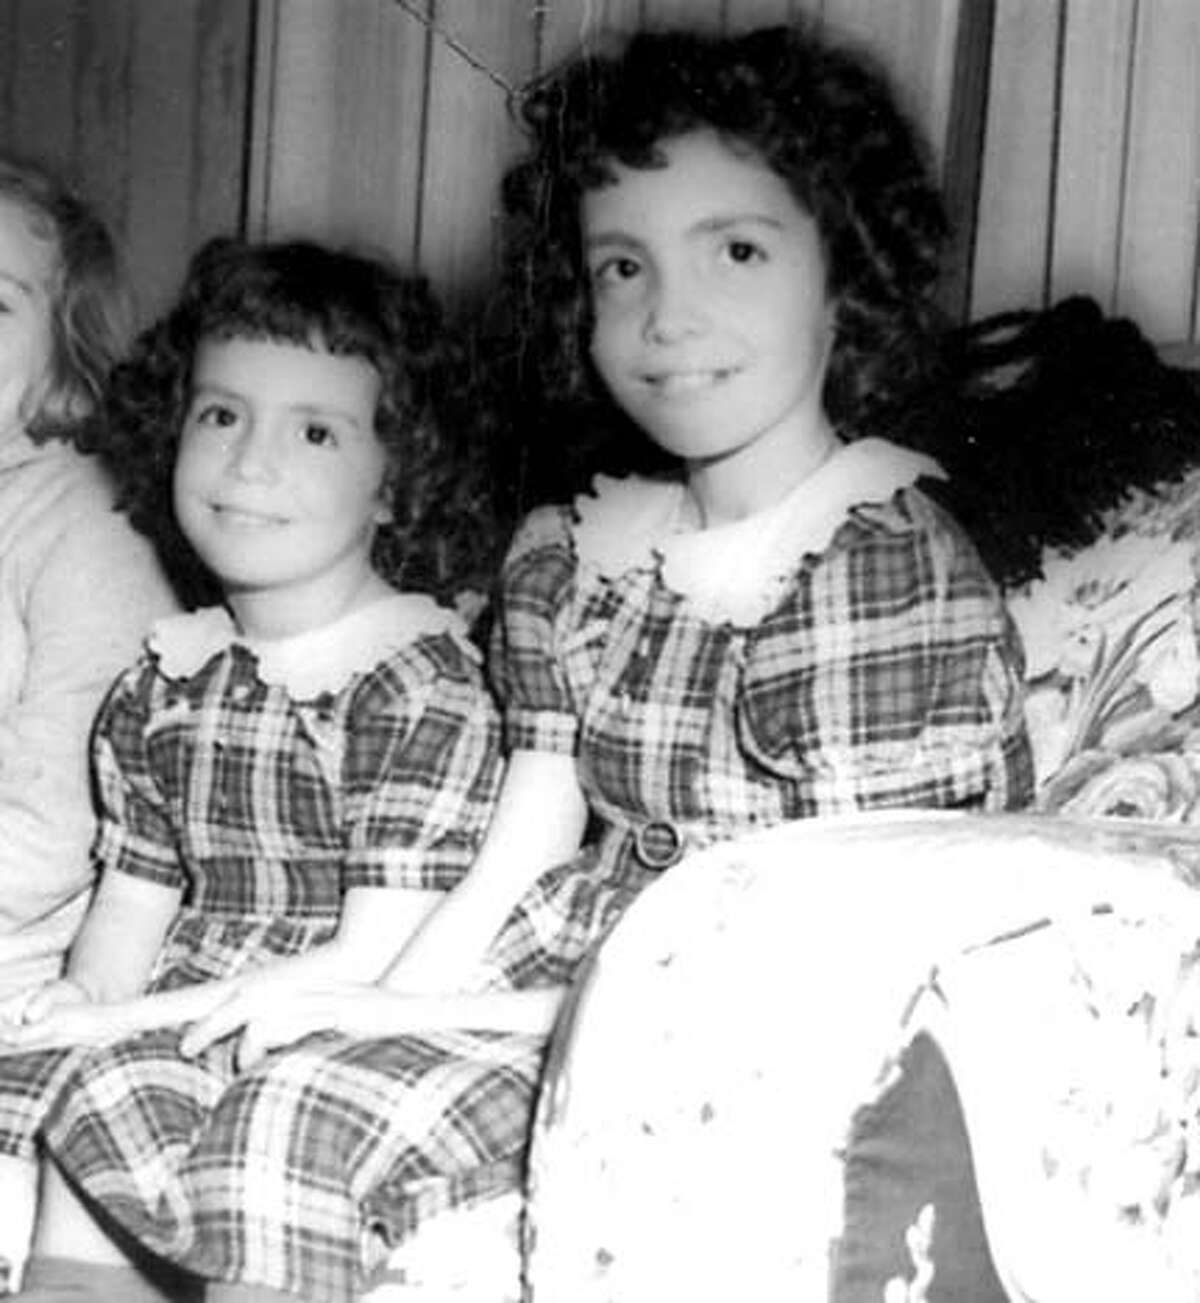 Fanos, left, poses for a childhood portrait with her older sister, Judy, who died of cystic fibrosis.